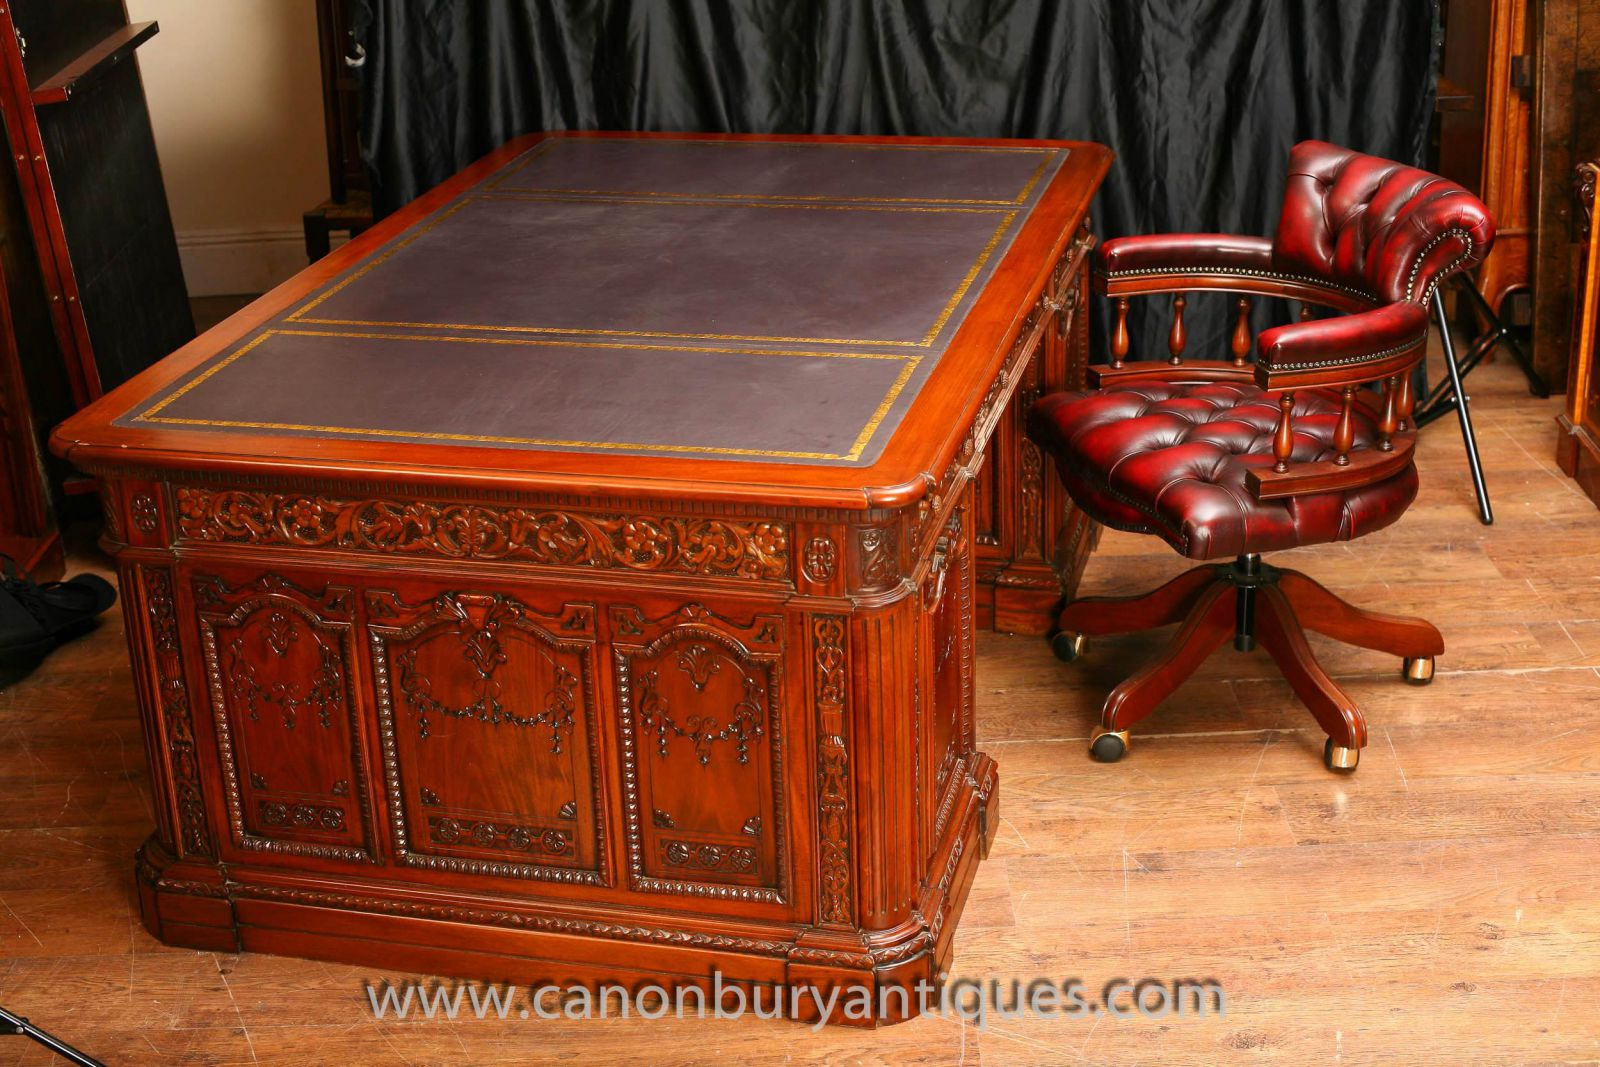 American Presidents Desk Oval Office White House www_canonburyantiques_com (1)-2 (1)